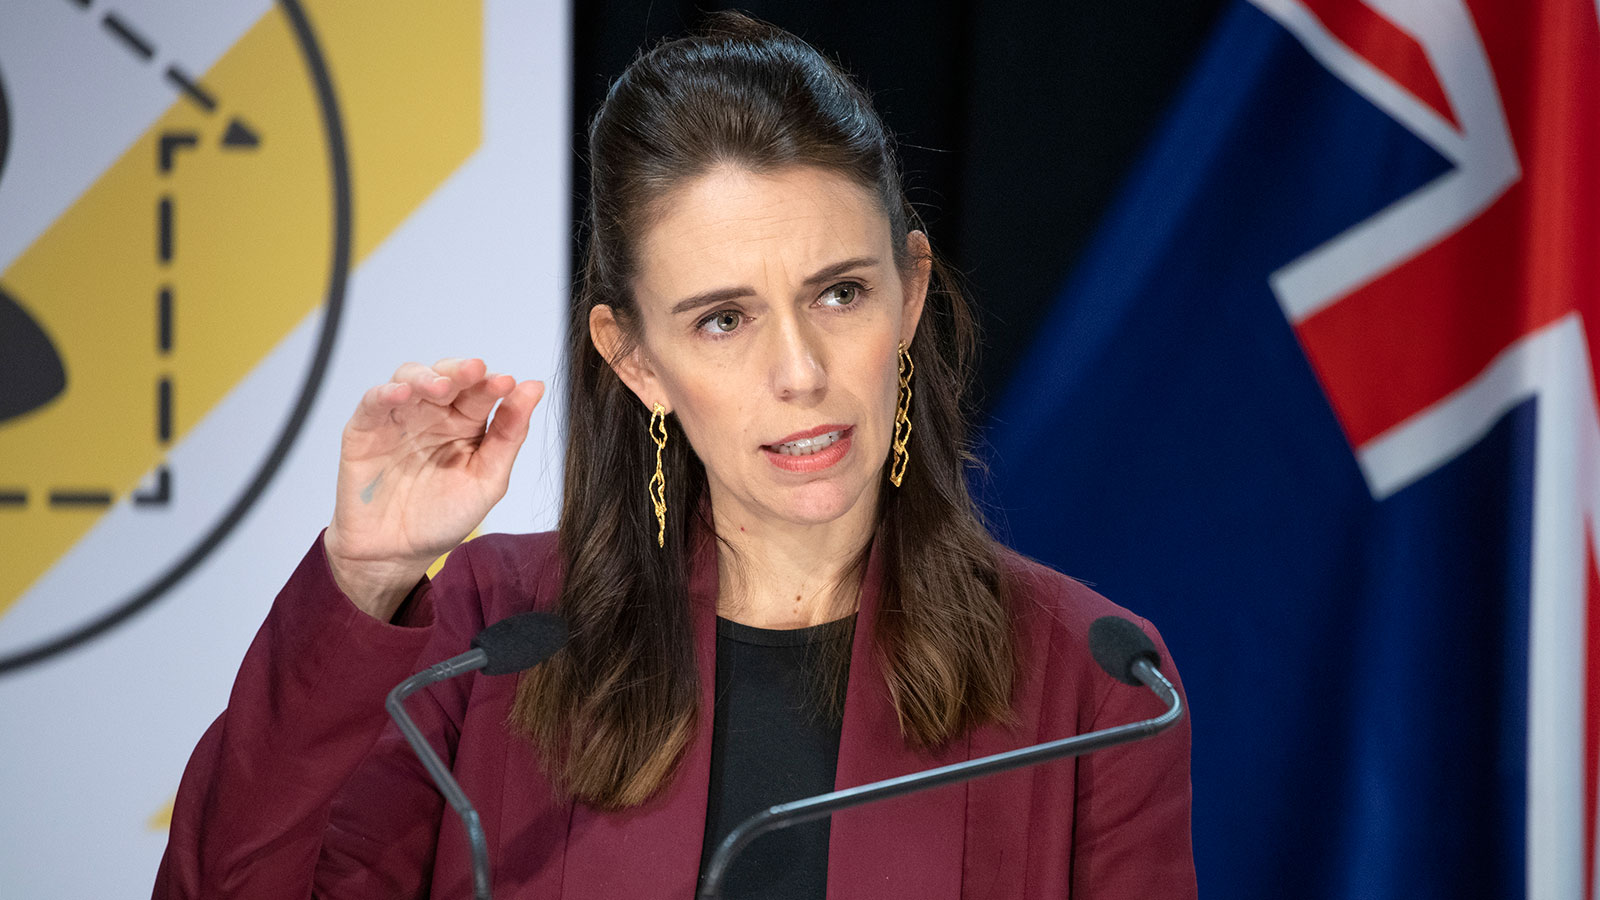 New Zealand Prime Minister Jacinda Ardern speaks at a briefing on the coronavirus pandemic at Parliament in Wellington, New Zealand on April 27.